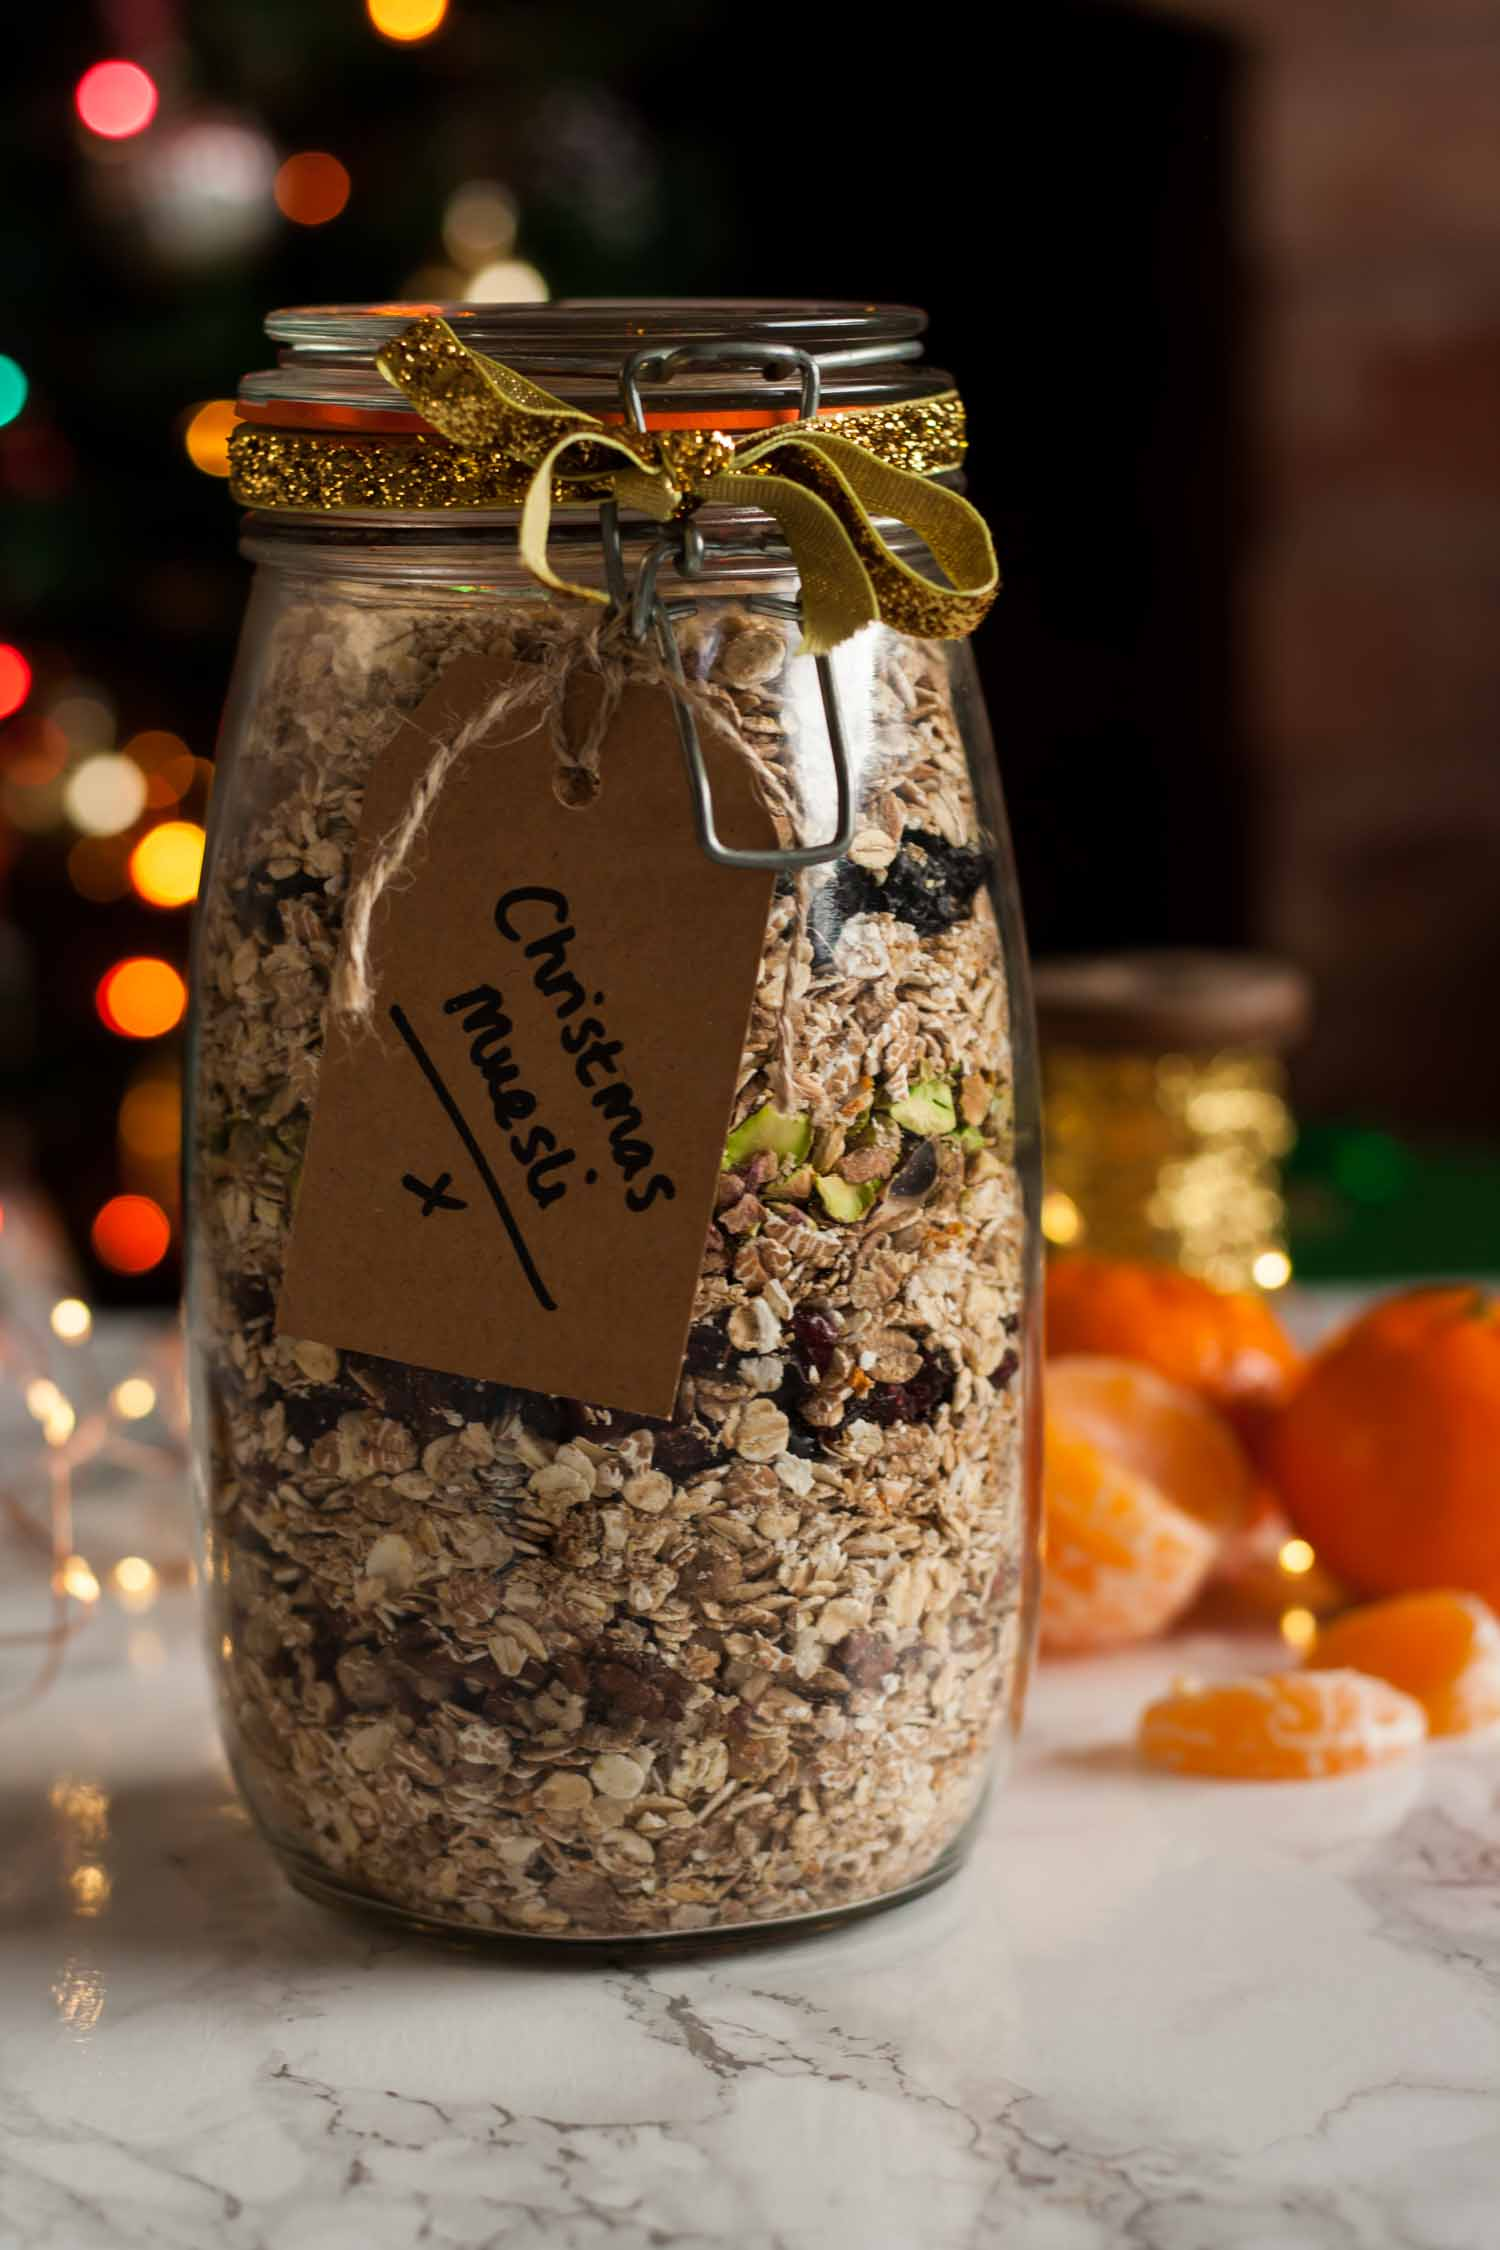 Christmas Muesli - this festive spiced muesli makes for a delicious breakfast and a lovely edible gift! | eatloveeats.com